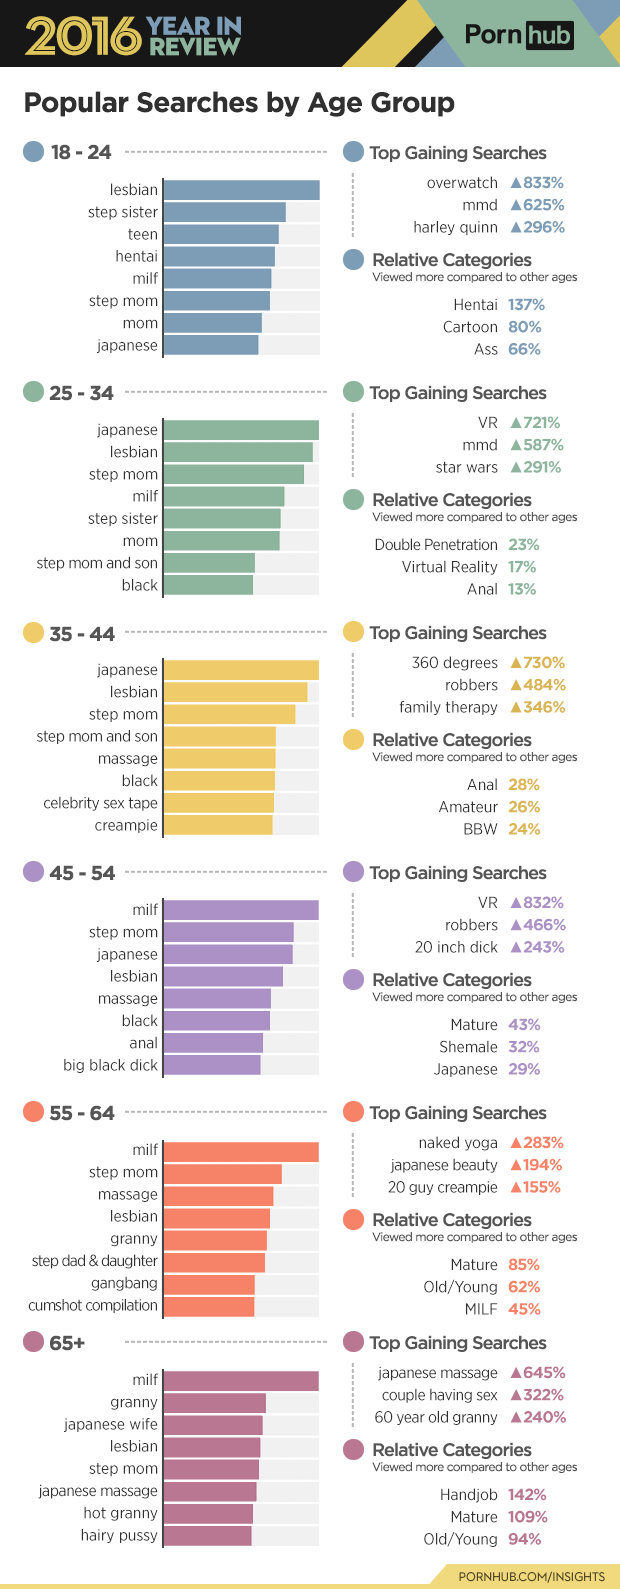 3-pornhub-insights-2016-year-review-age-searches